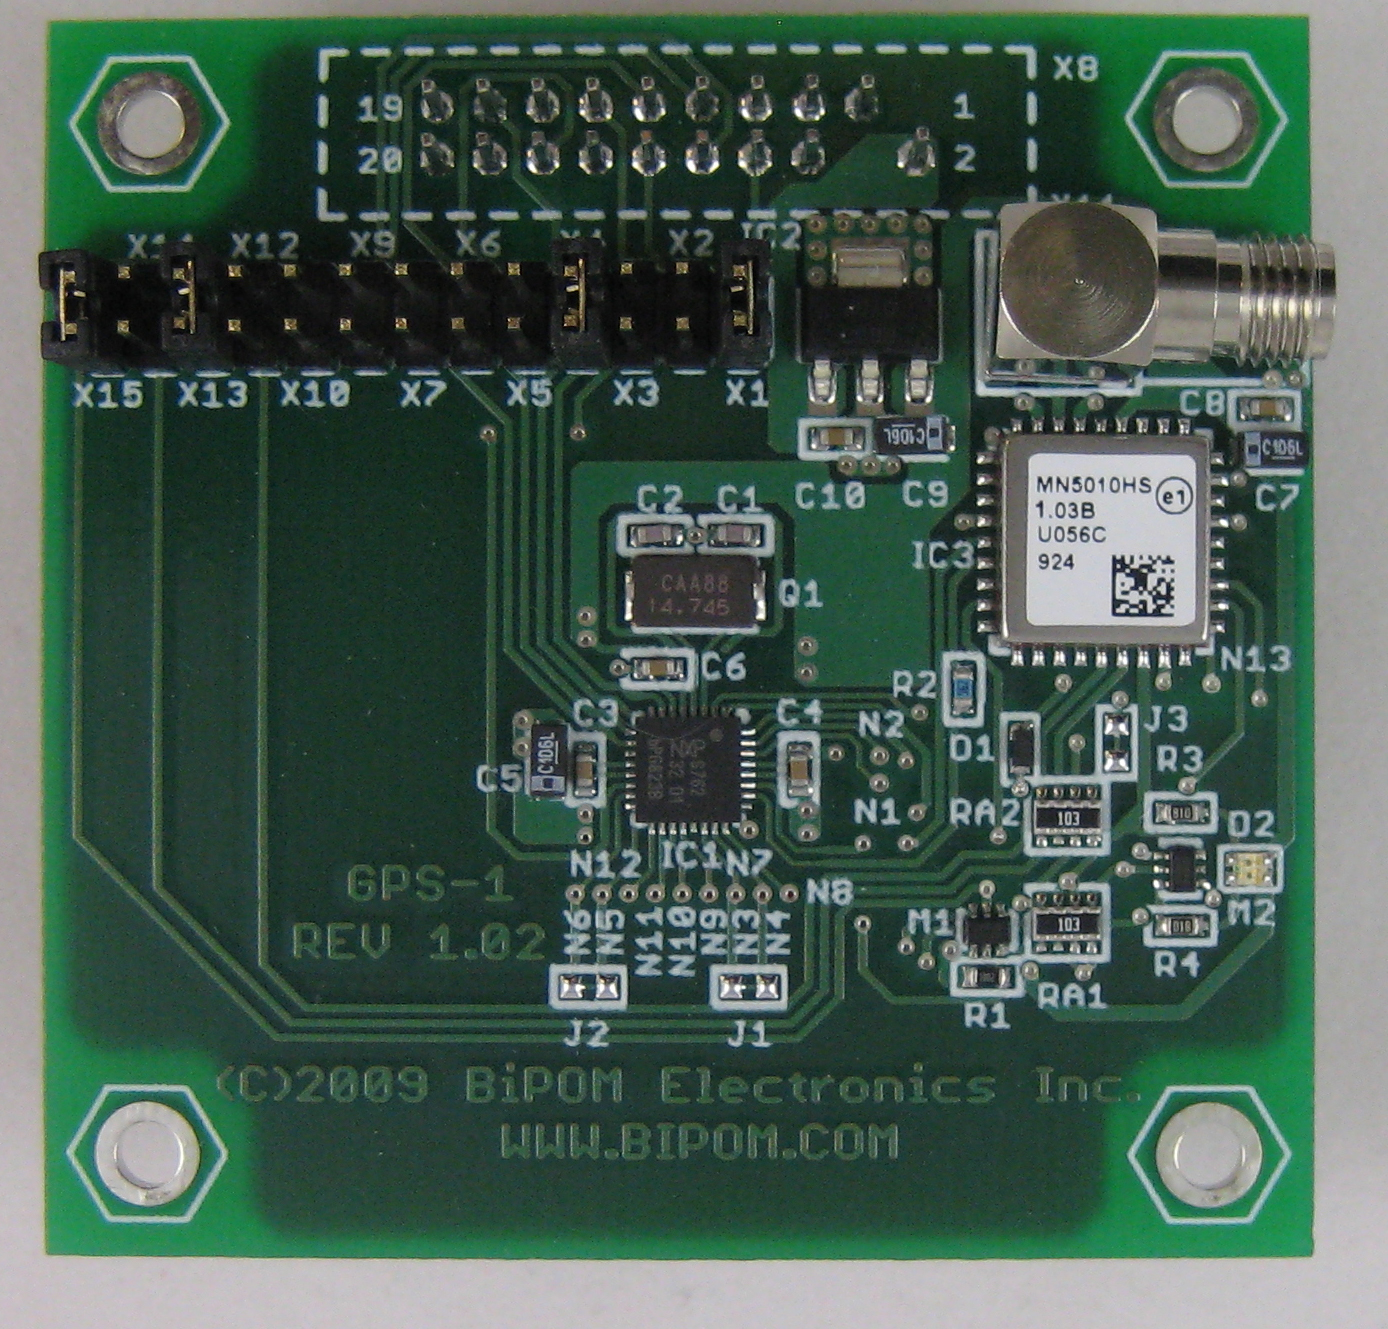 GPS-1 - Global Positioning System (GPS) Peripheral Board